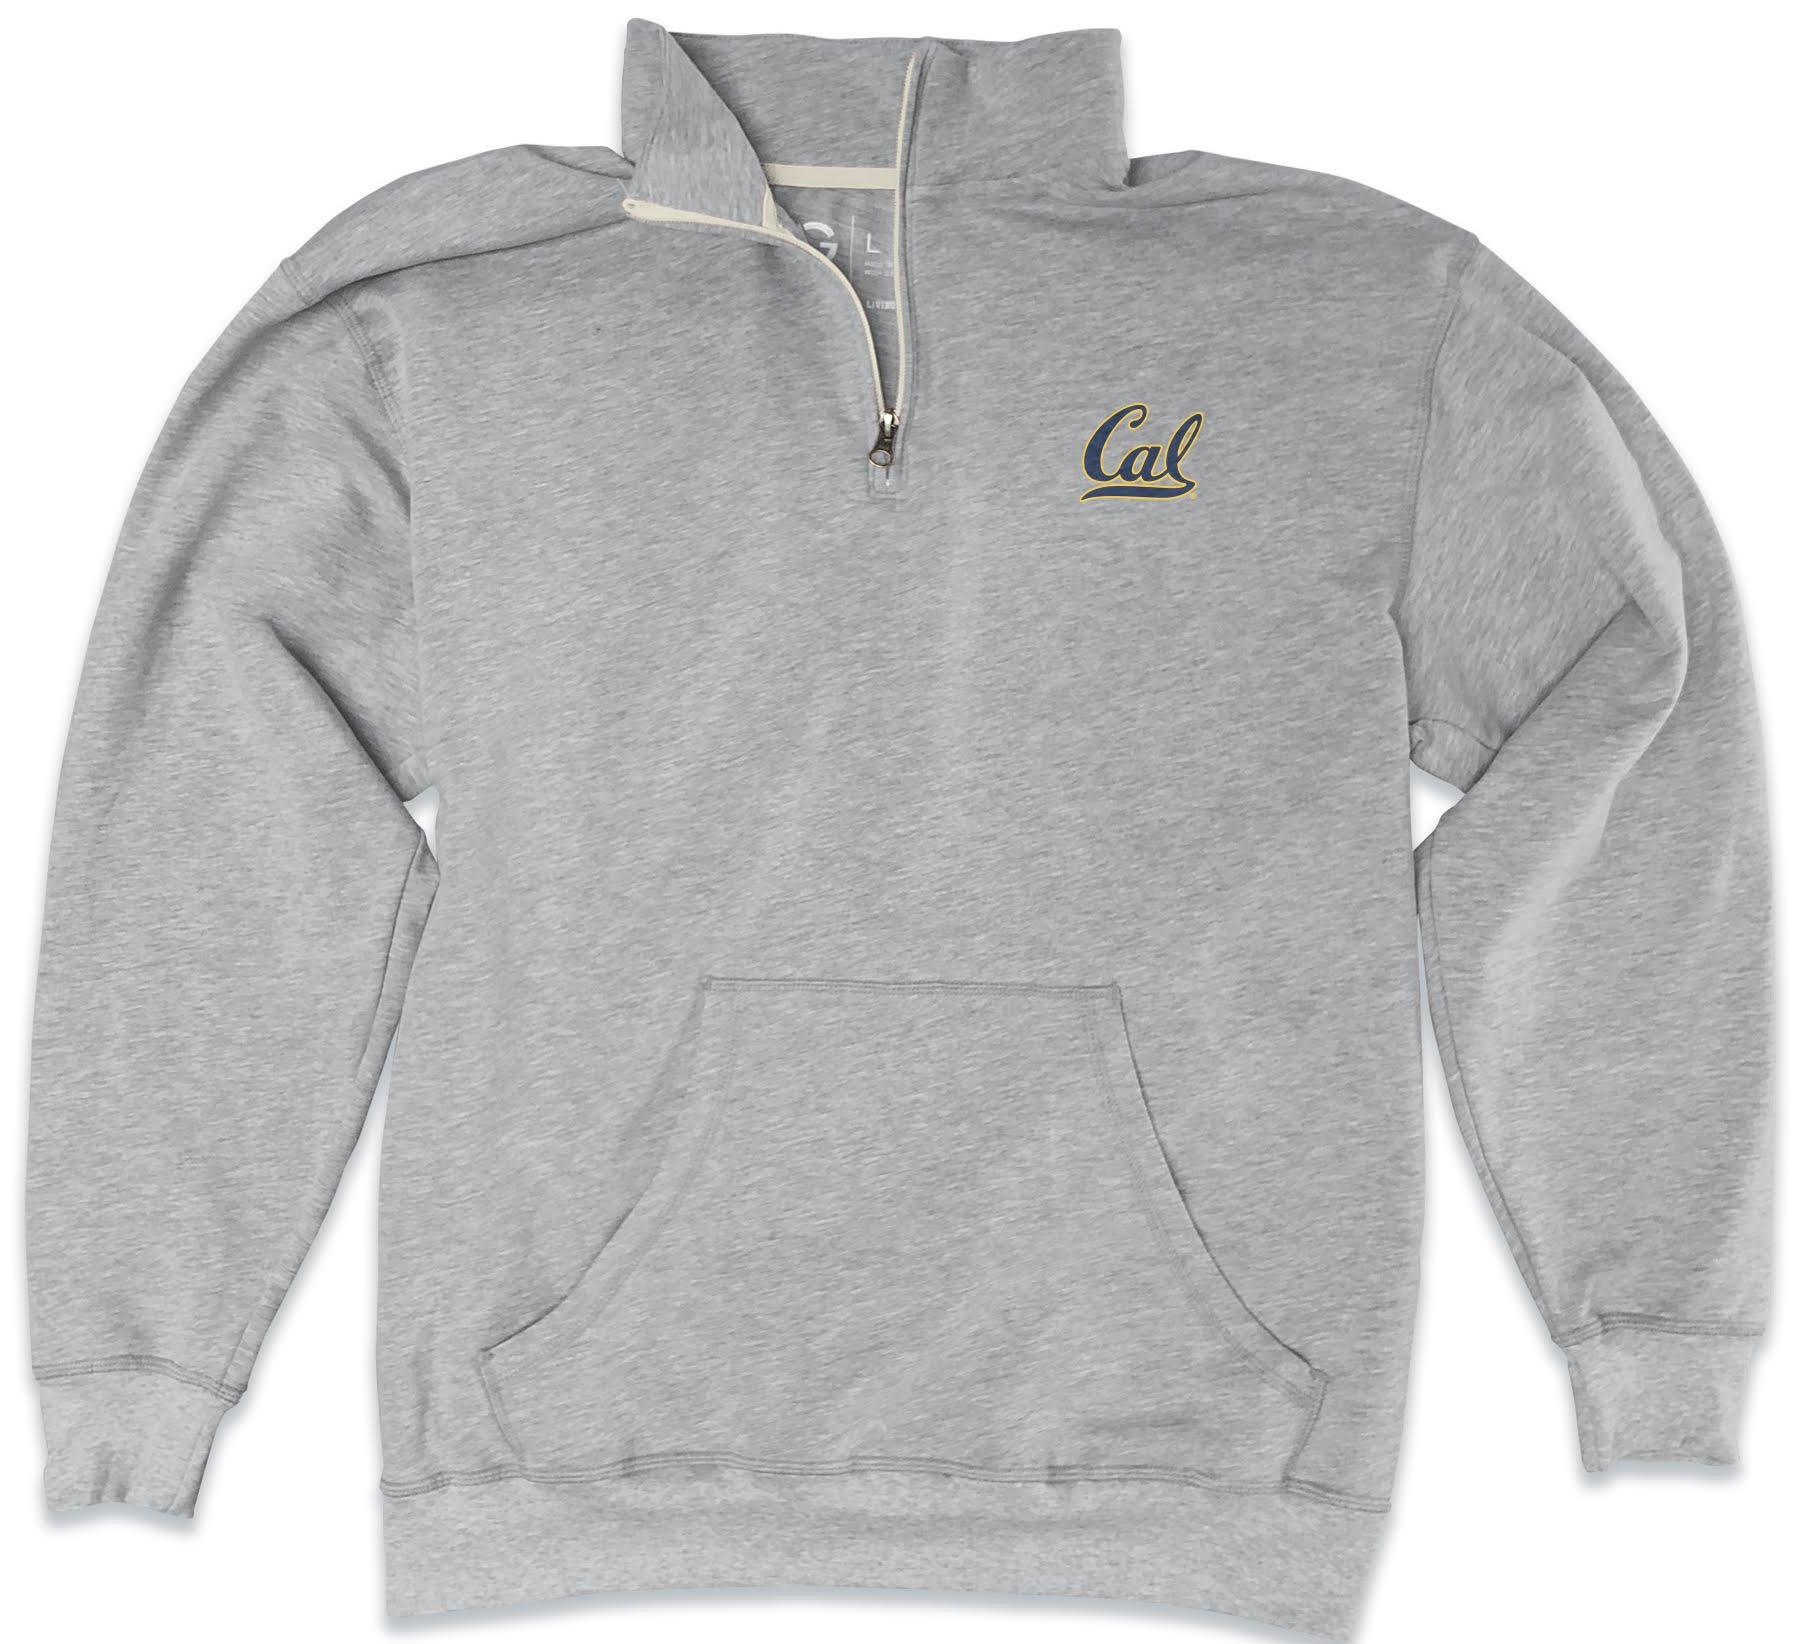 MD25-Cal Bears Men's Jim 1/4 Zip Sweatshirt